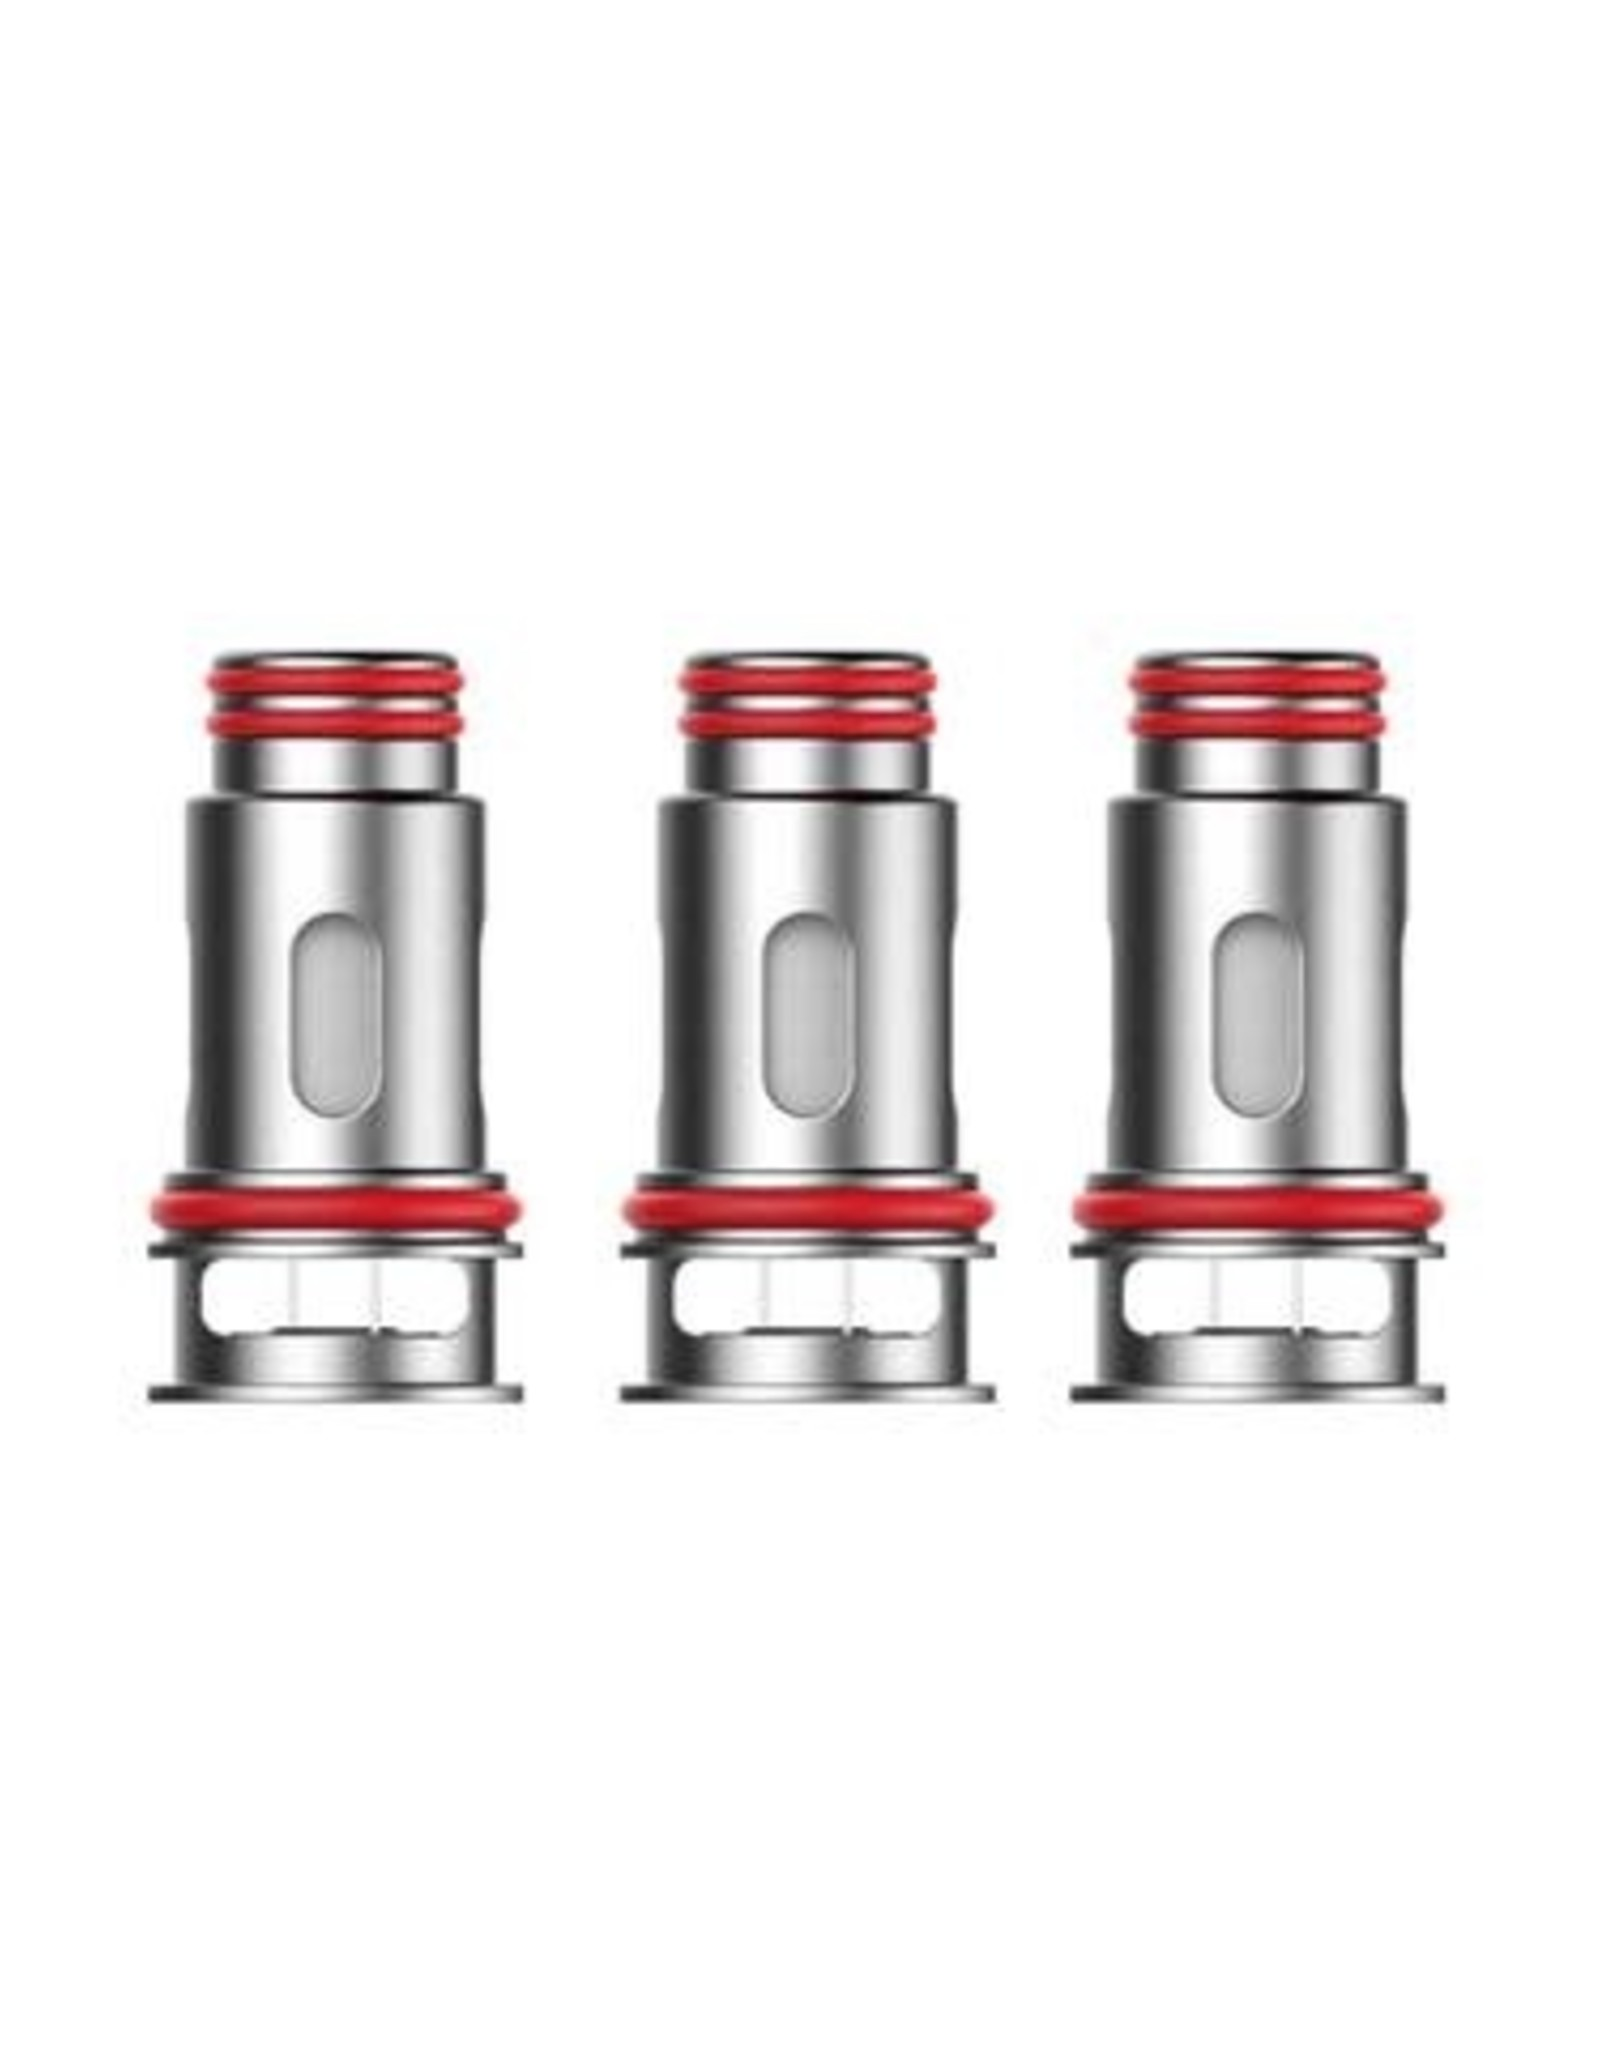 SMOK SMOK RPM 160 REPLACEMENT COIL (3 PACK)